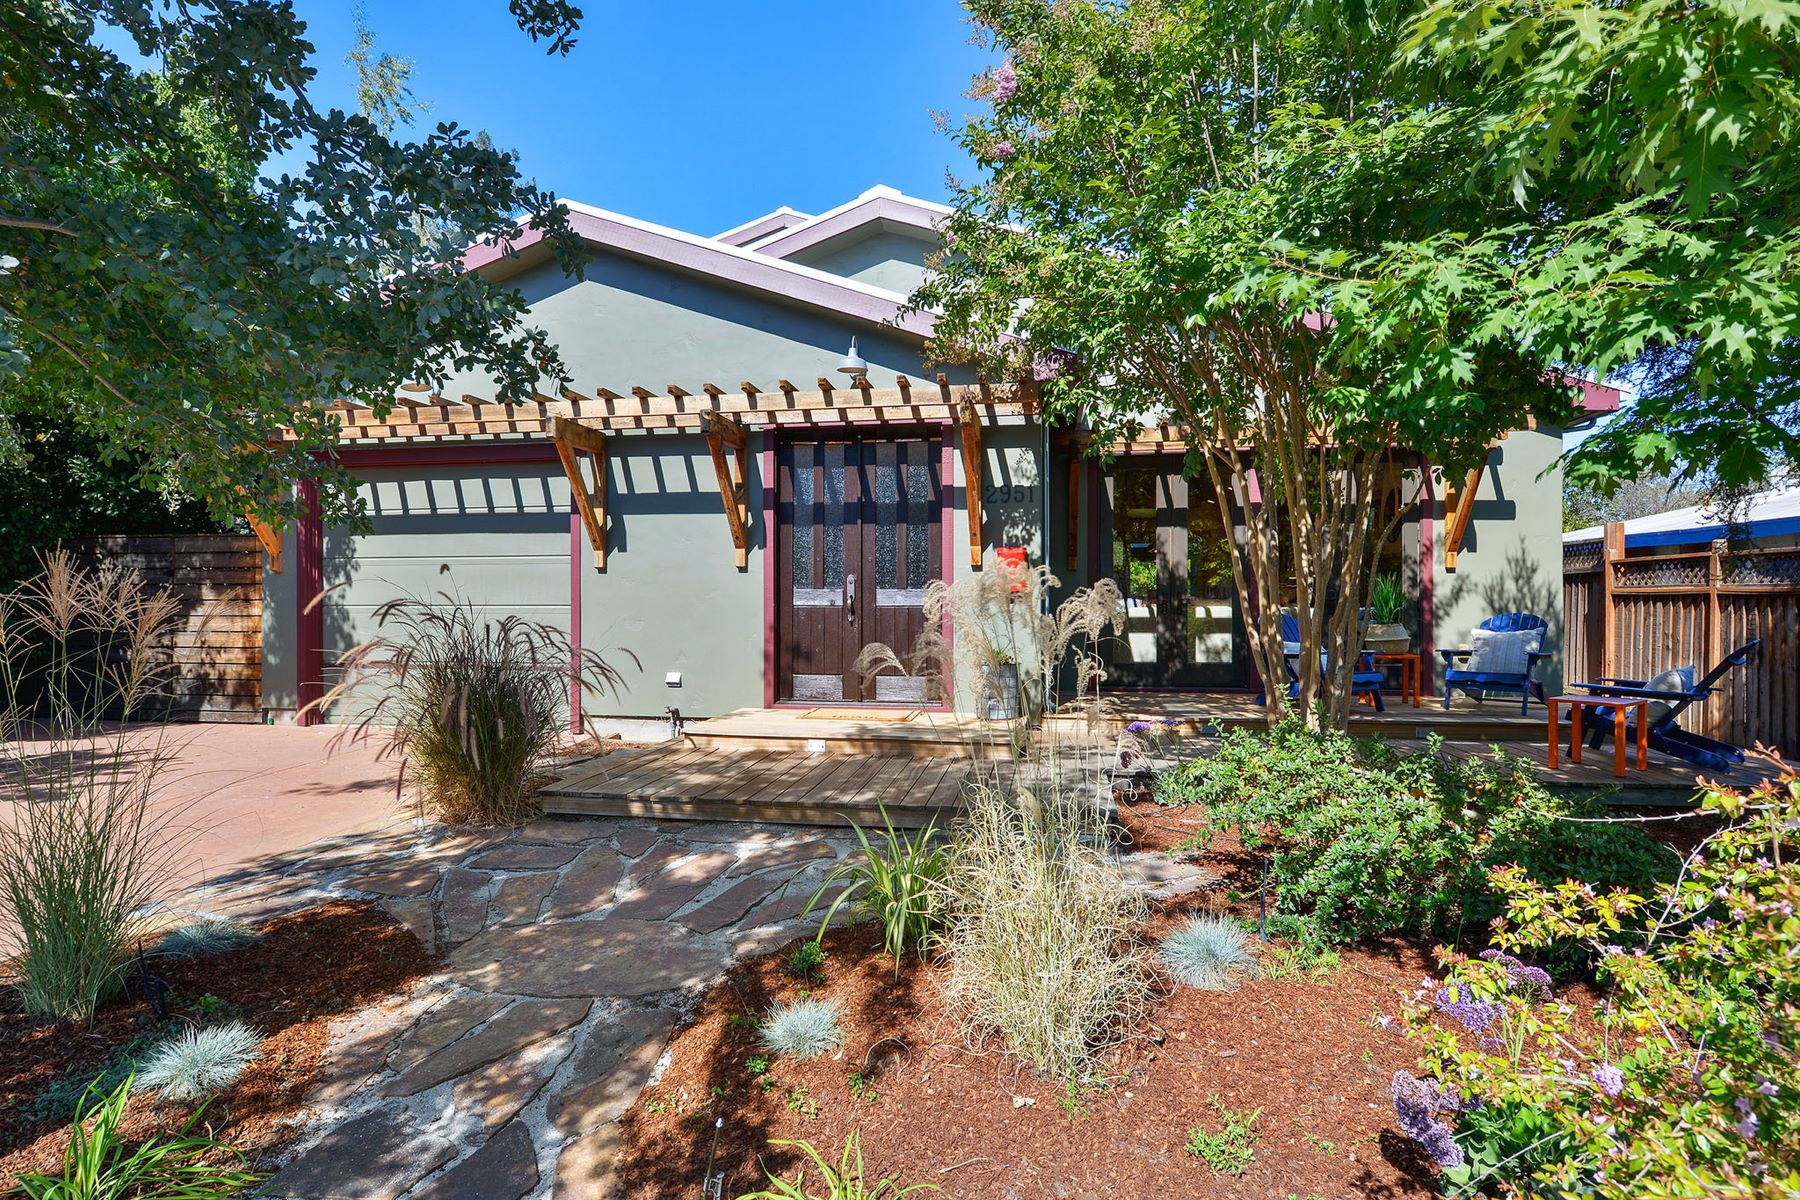 Single Family Homes for Sale at Rustic Modern in Midtown Palo Alto 2951 Bryant Street Palo Alto, California 94306 United States